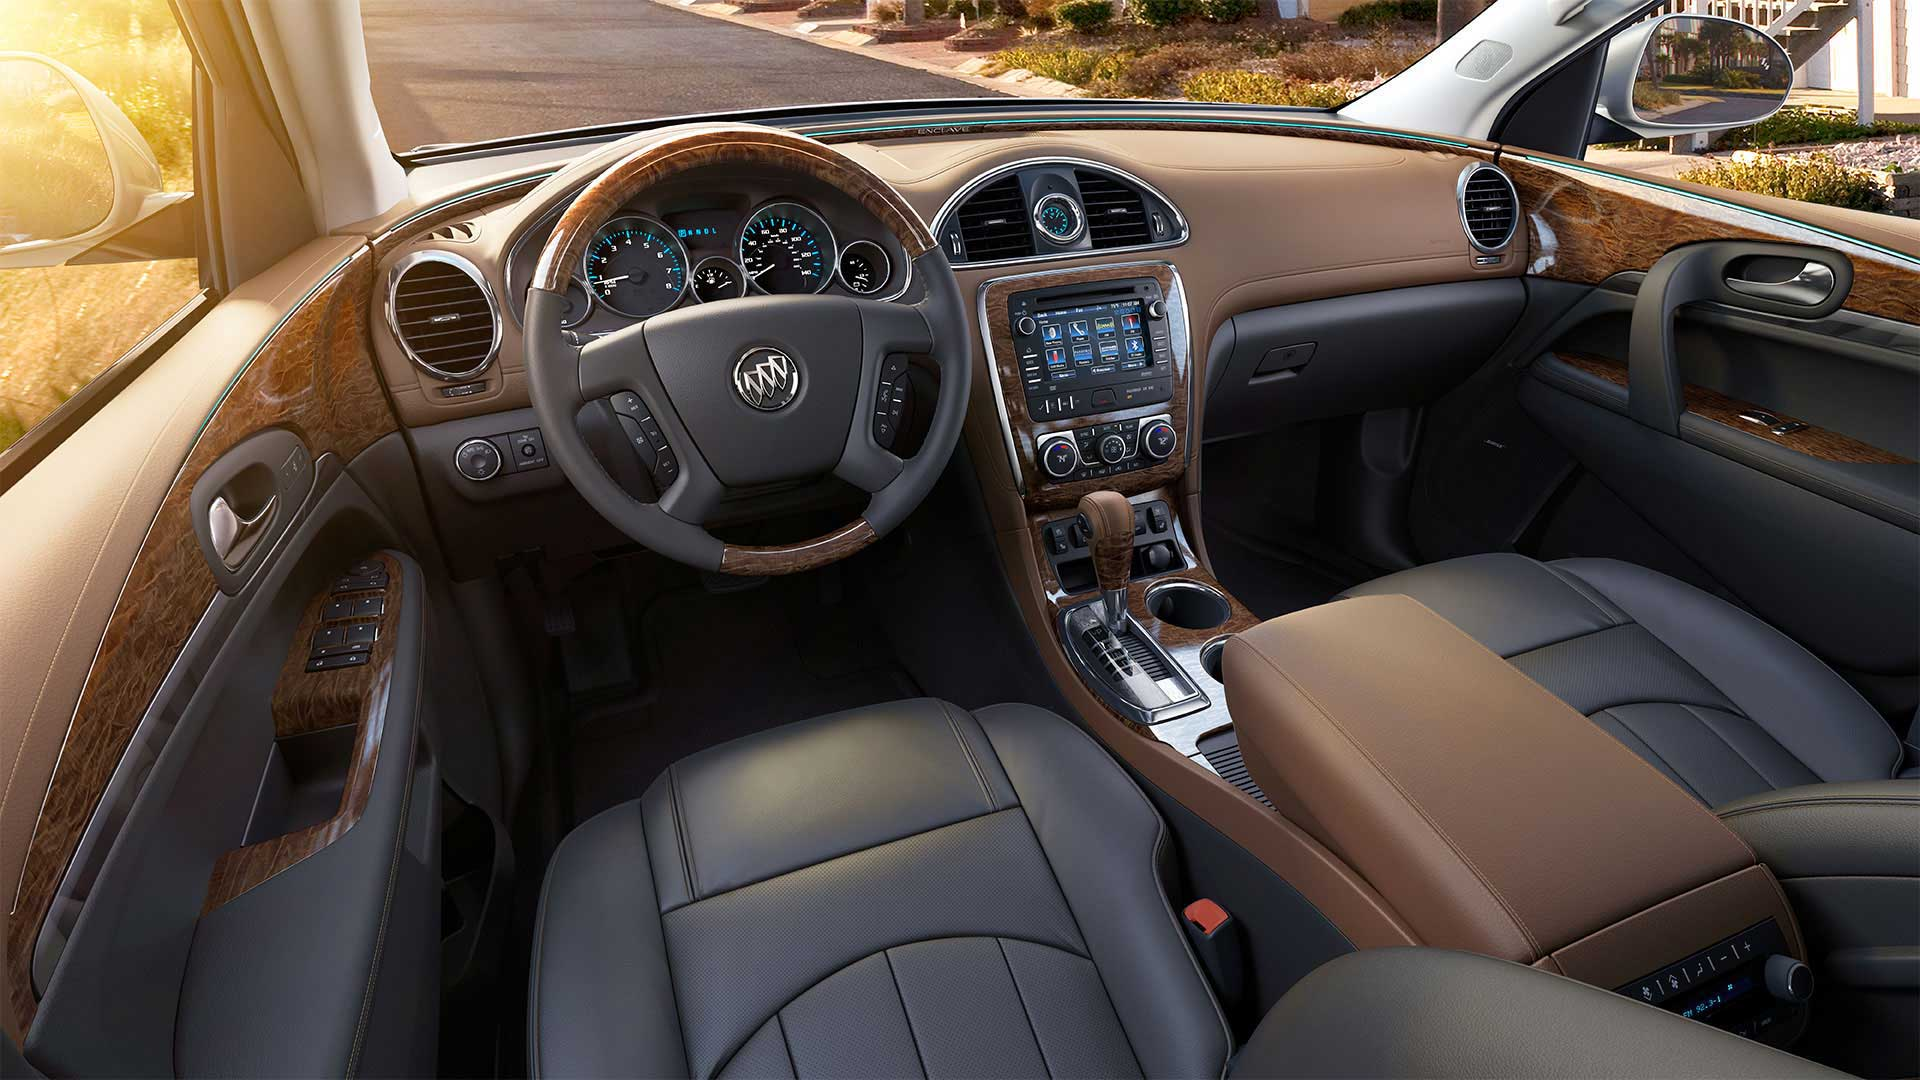 buick enclave pictures #4